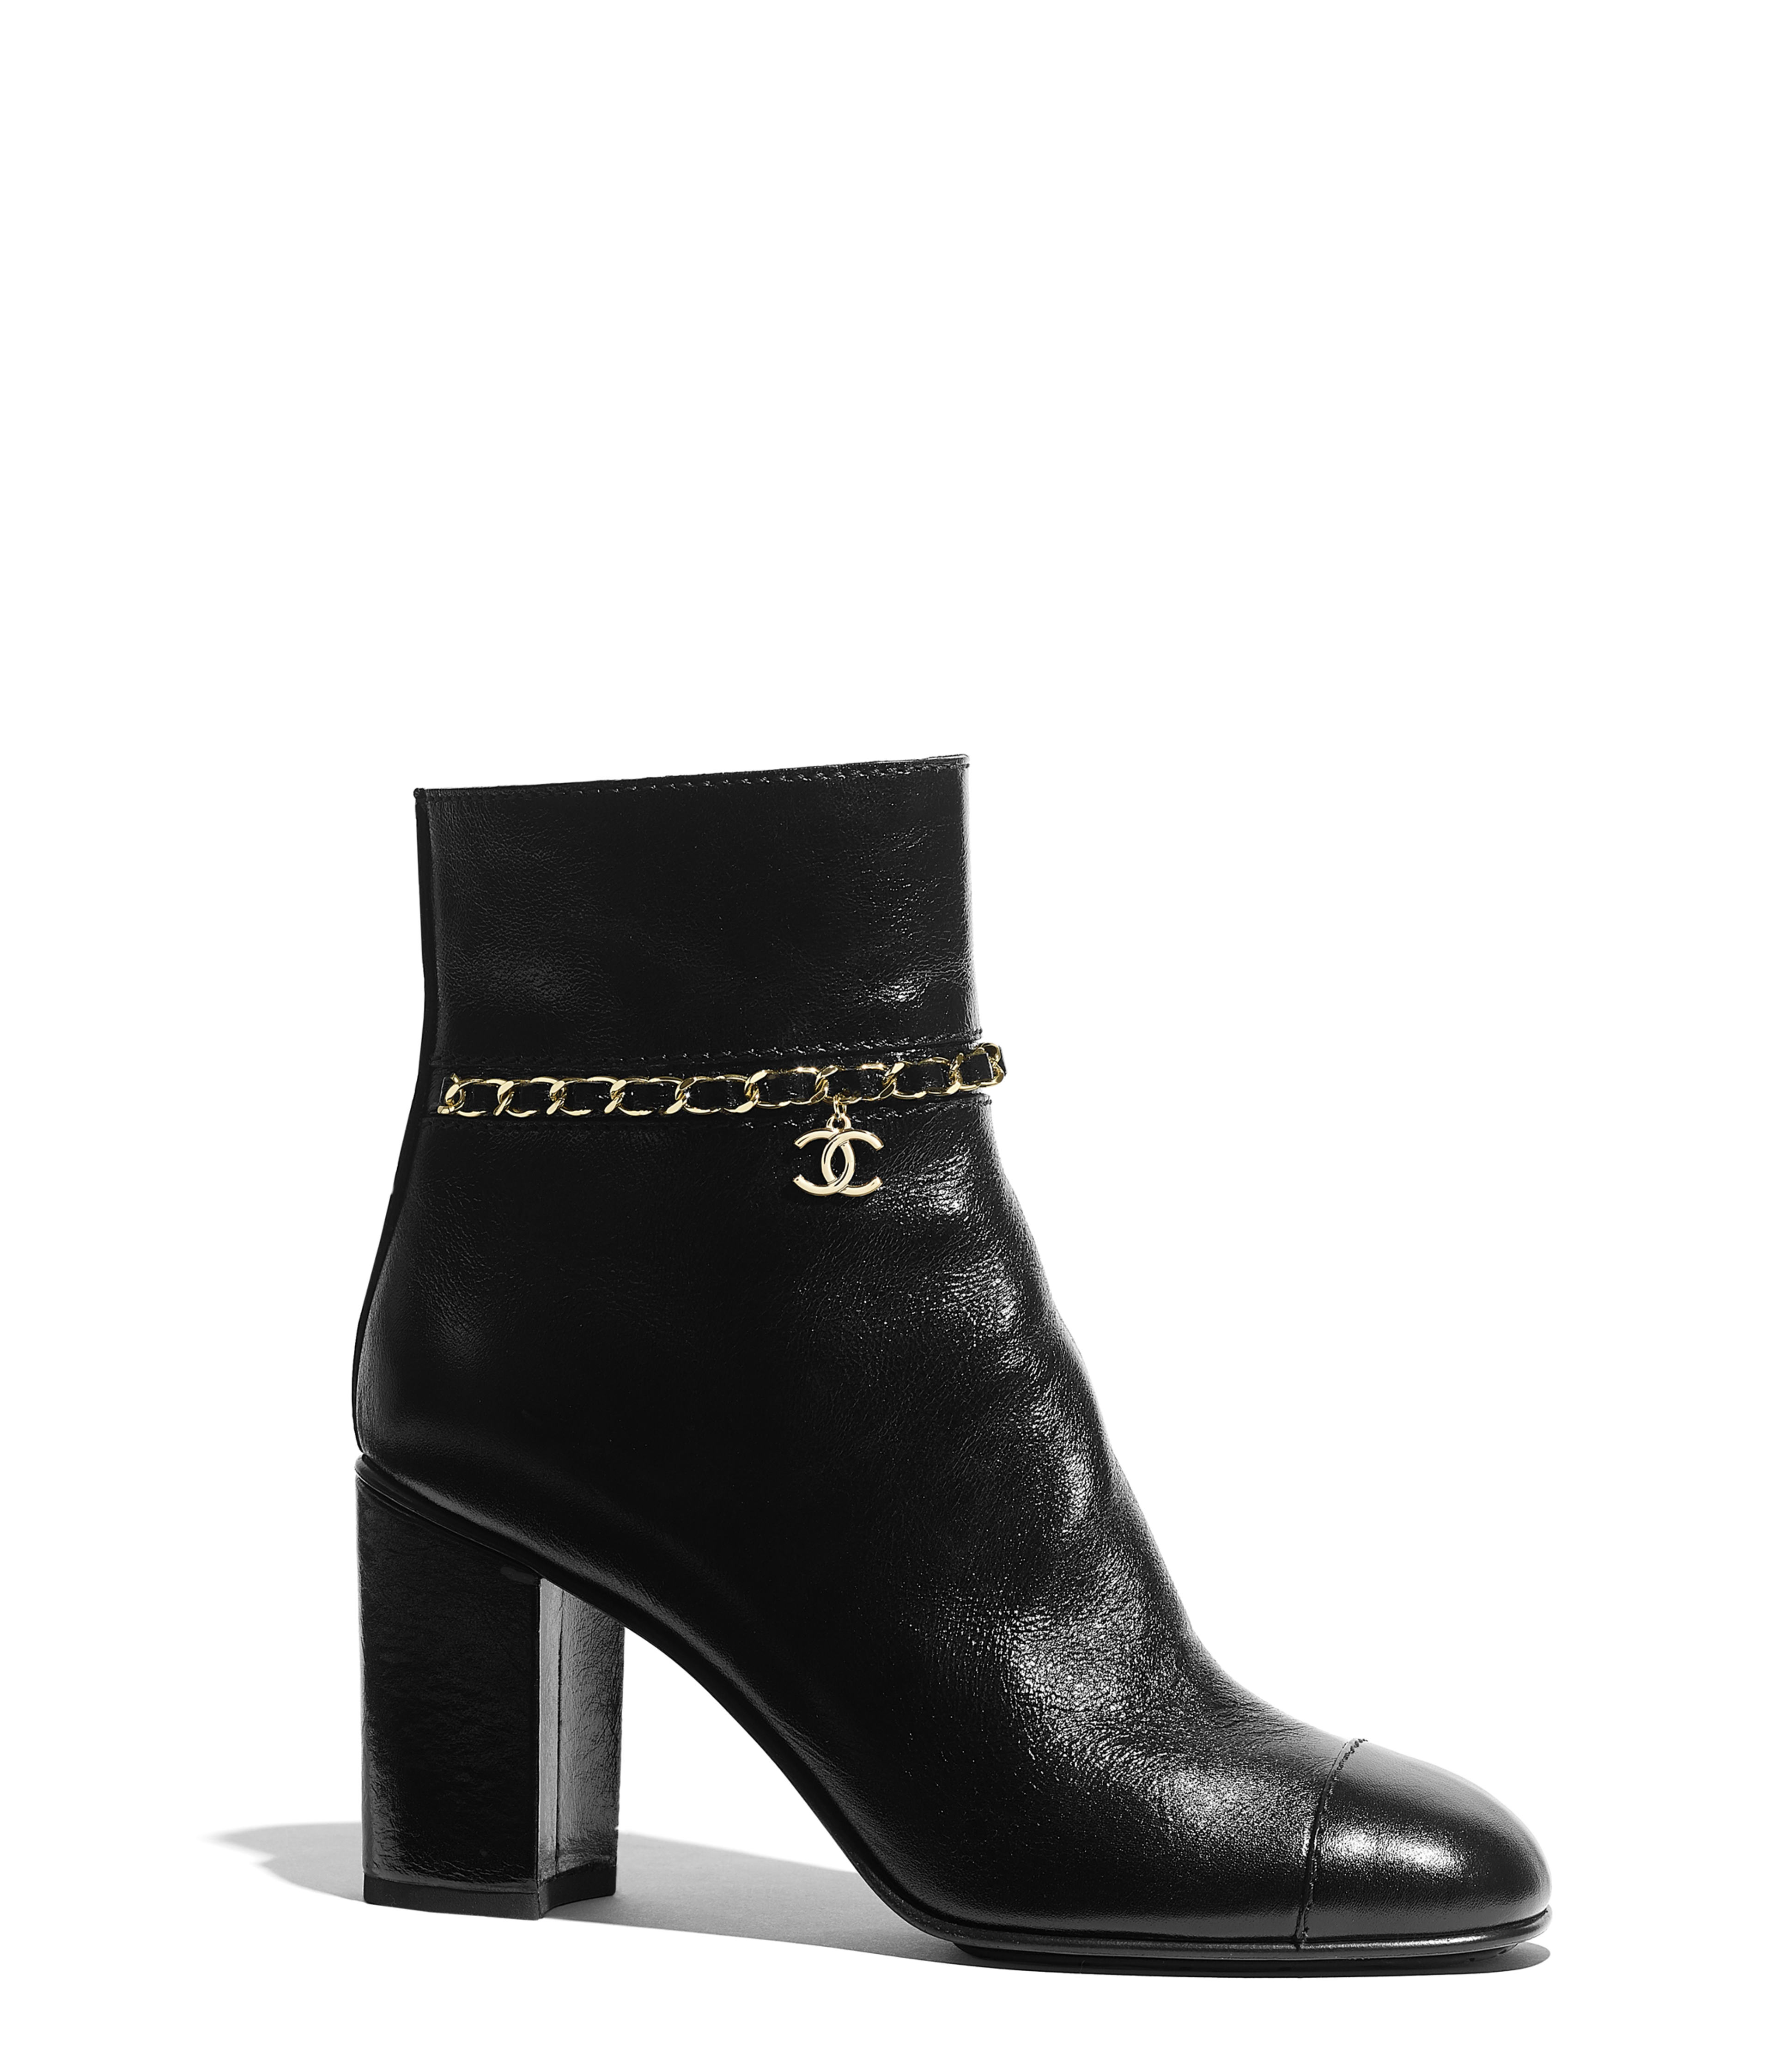 1f1cd043fe0 Short Boots - Shoes | CHANEL